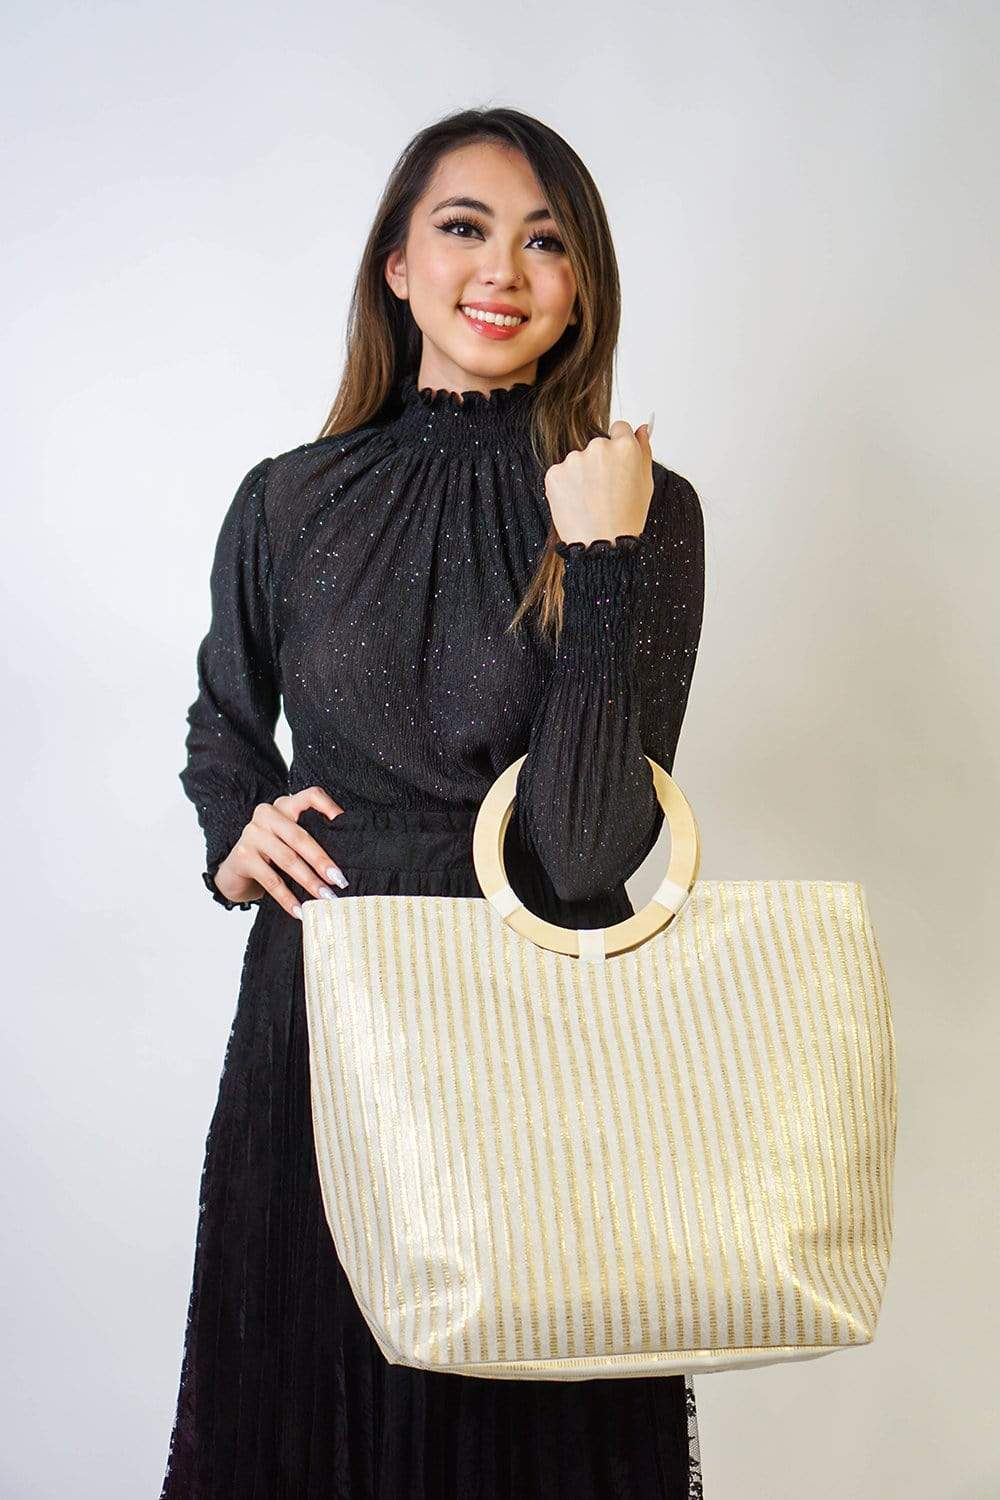 HANDBAG Shimmer Stripe Tote Bag in Gold - Chloe Dao